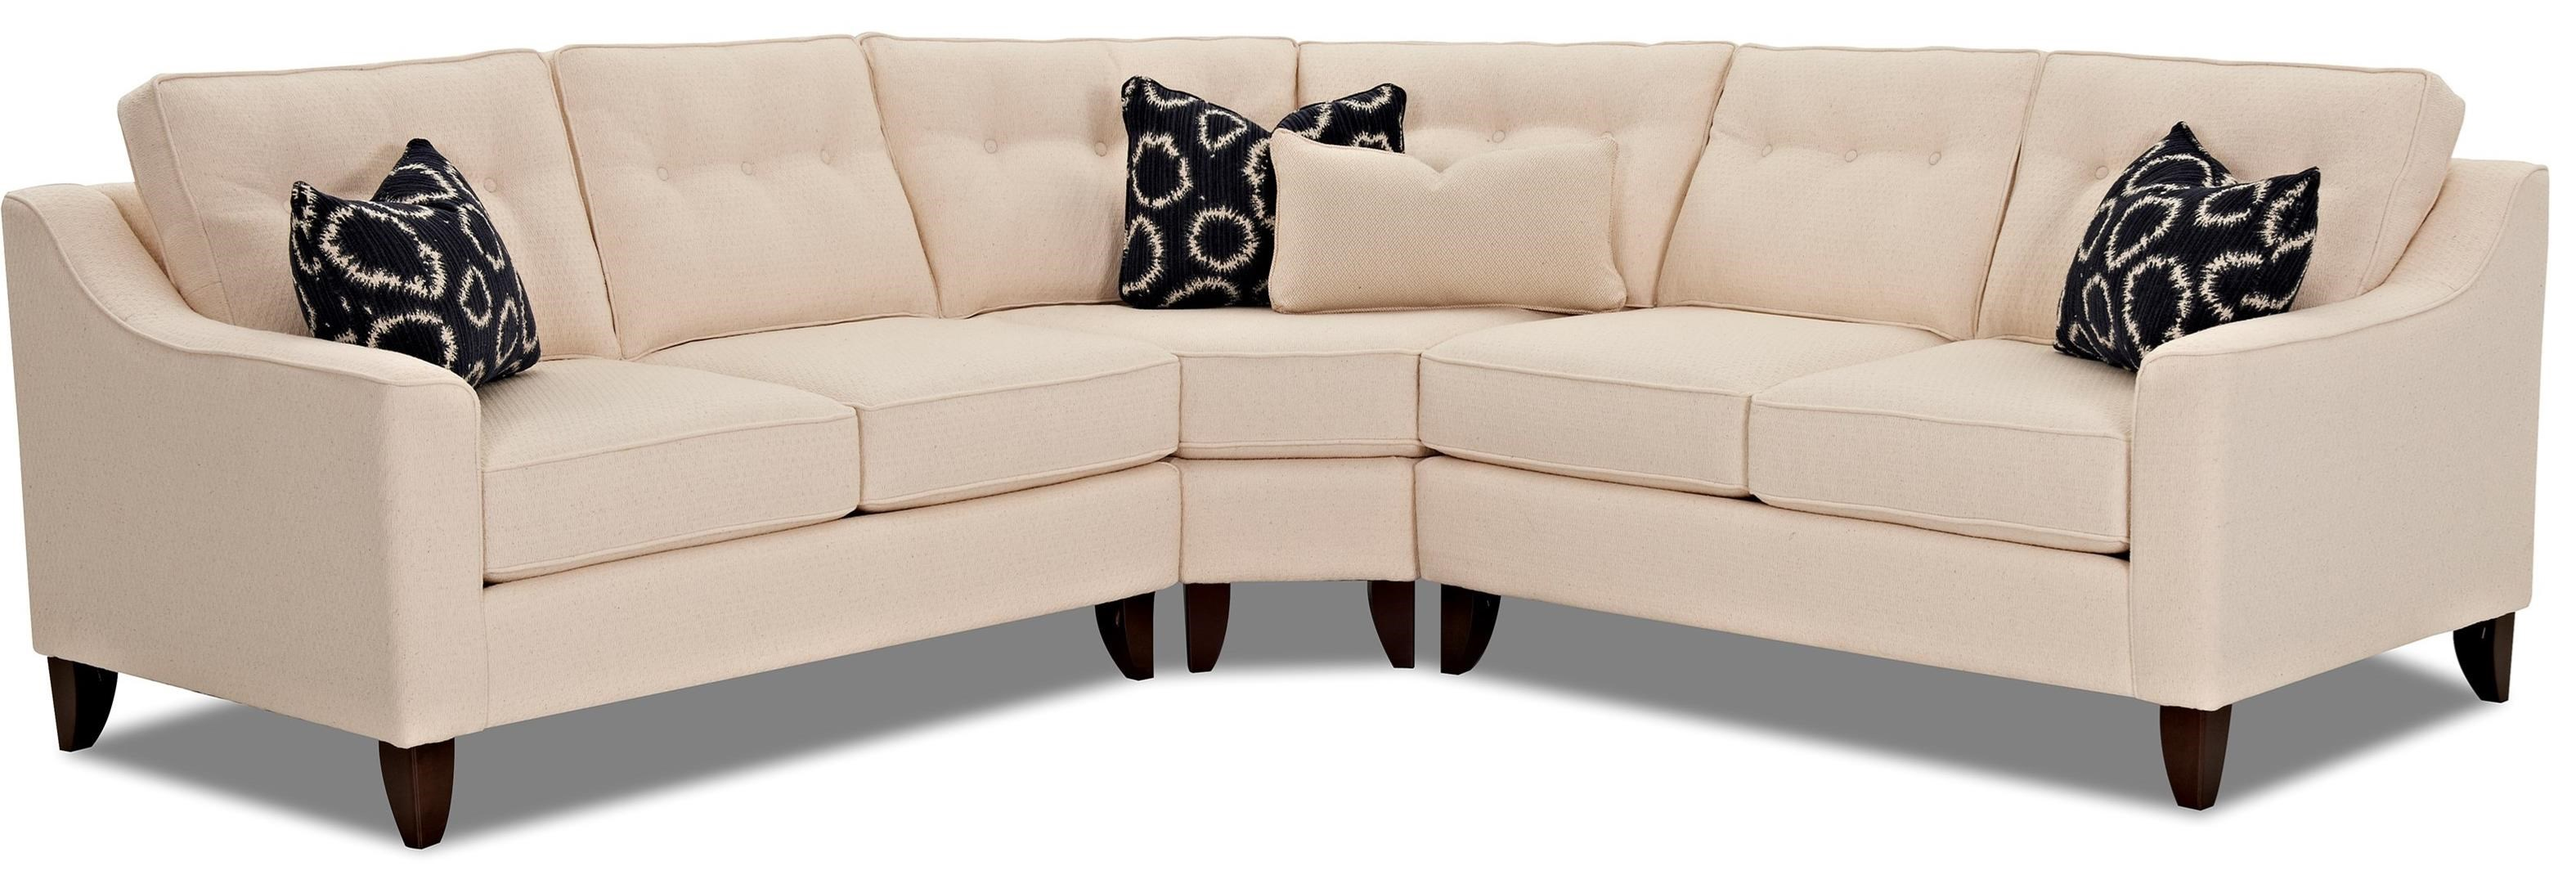 Contemporary 3 Piece Sectional with Wedge